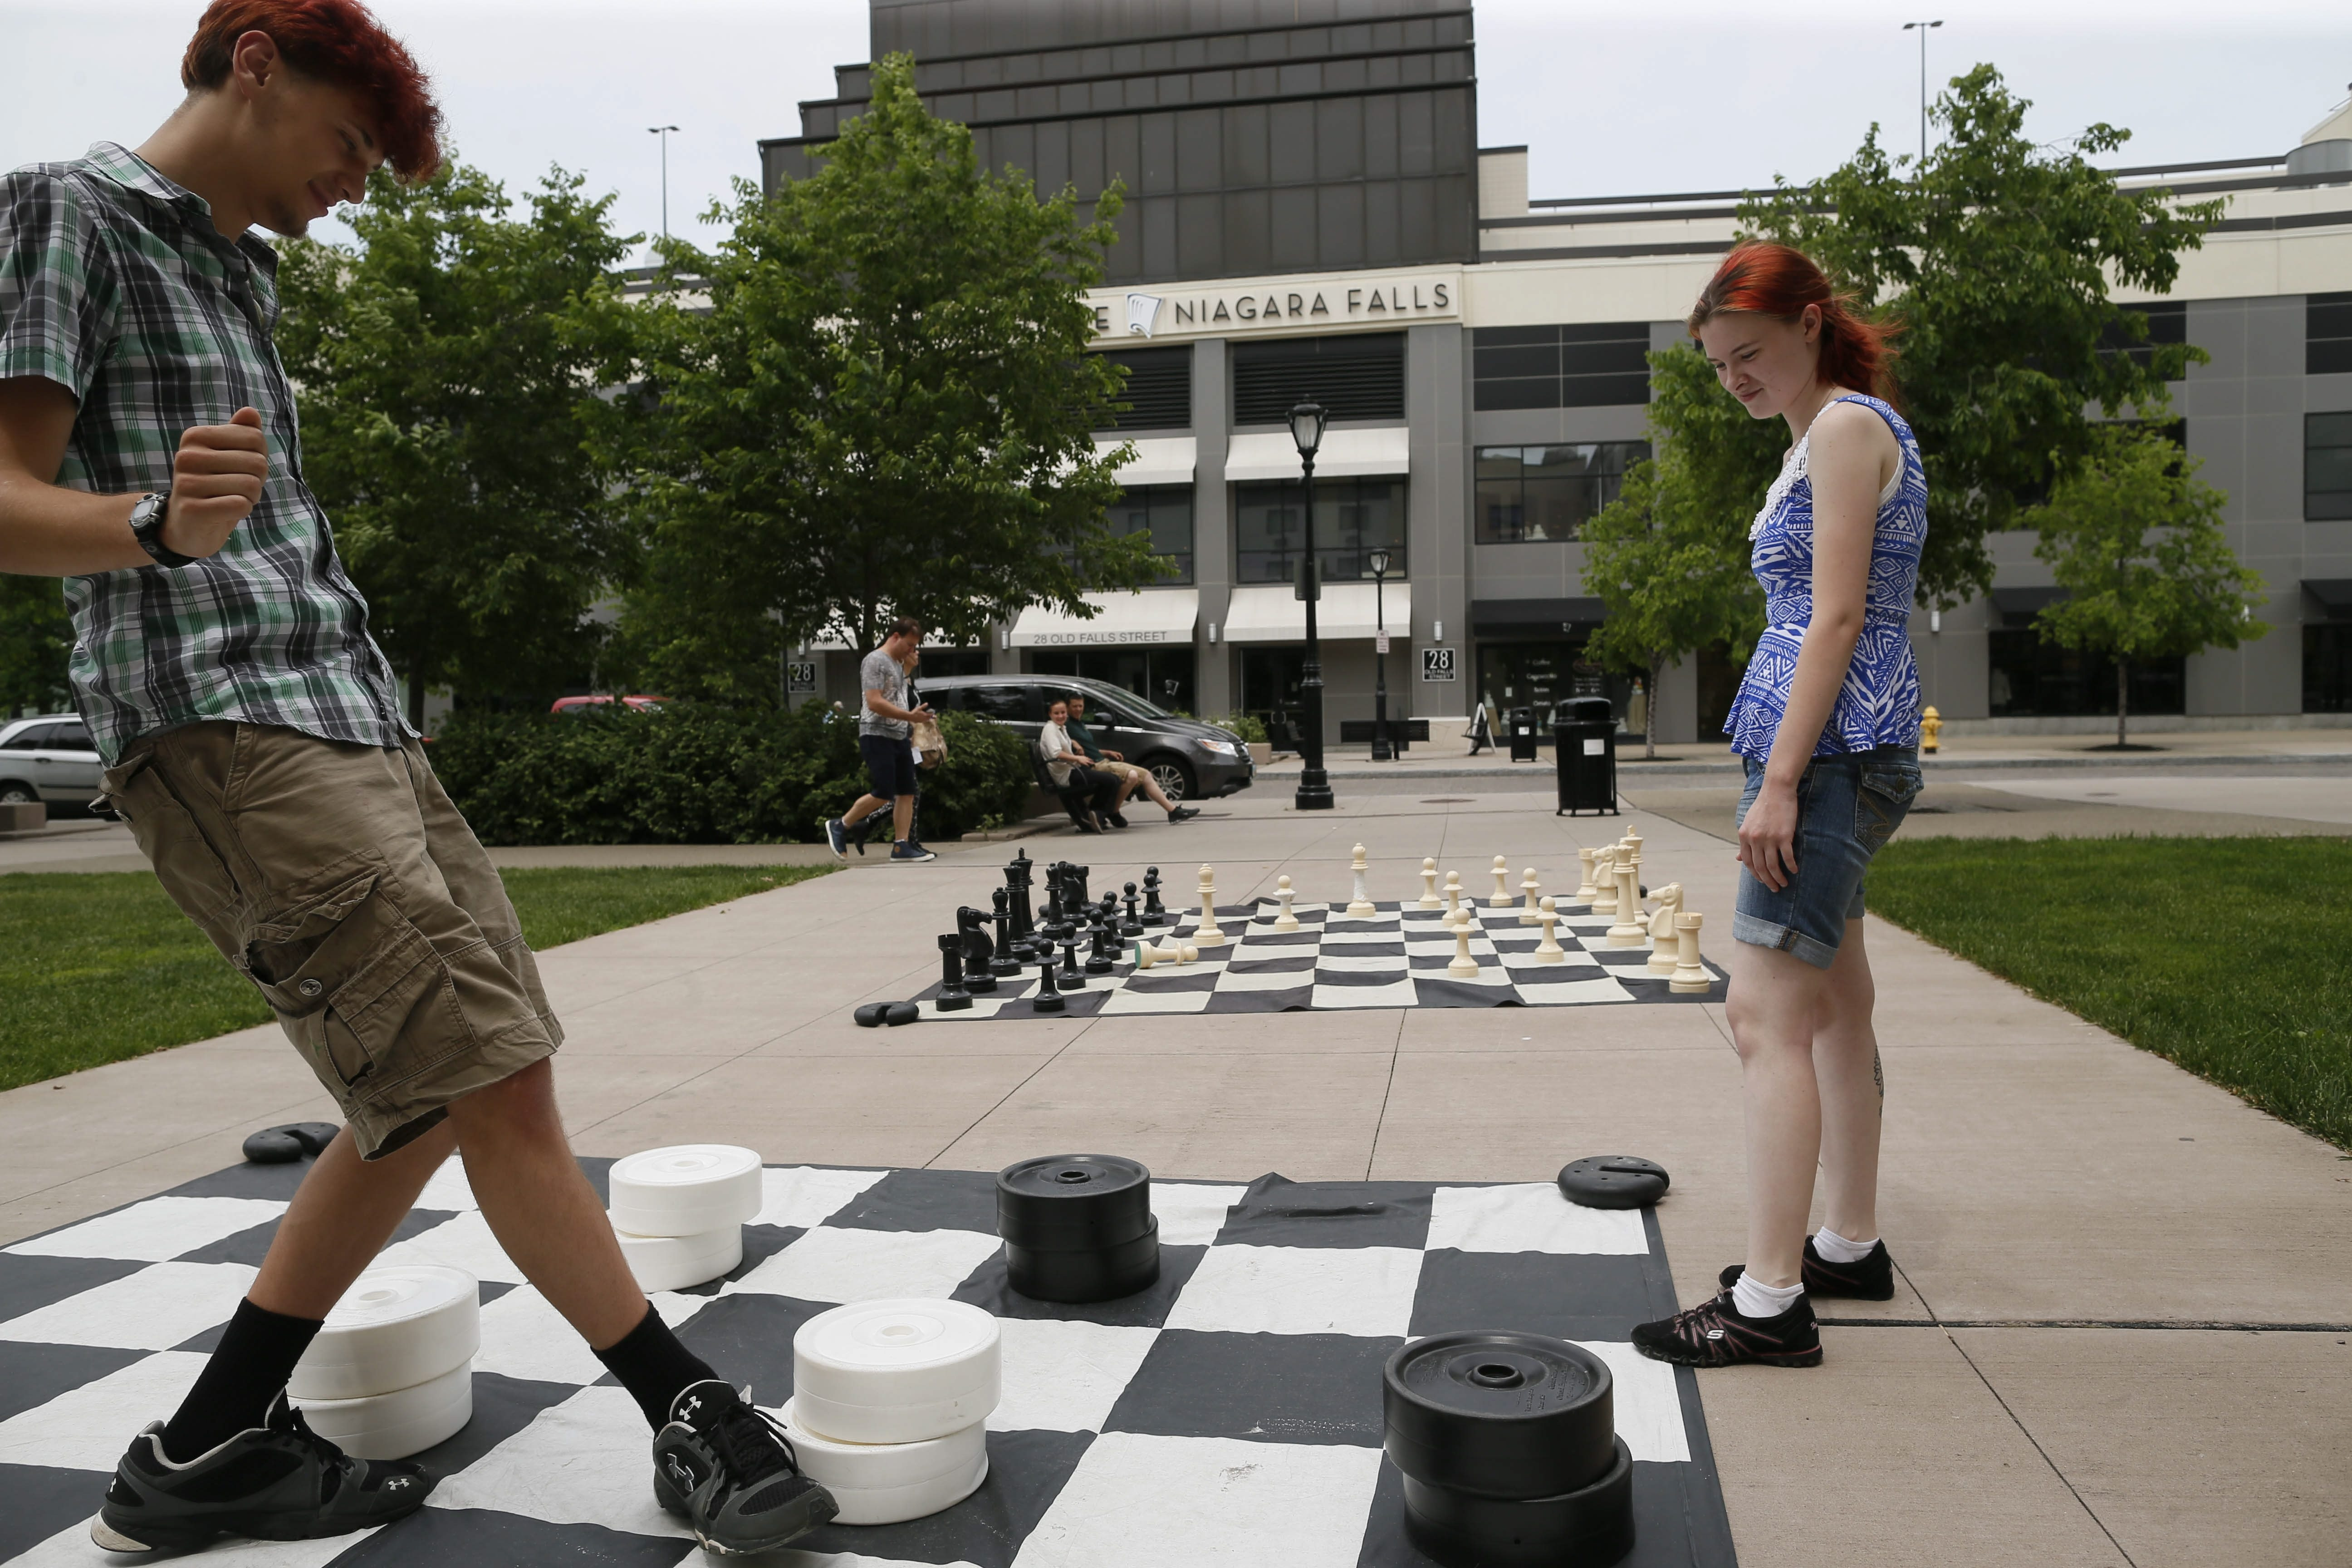 Kevin Sandmaier and Jayme Rothenberger of Buffalo play checkers on a giant board on Old Falls Street, one of the many fun activities this summer in Niagara Falls.